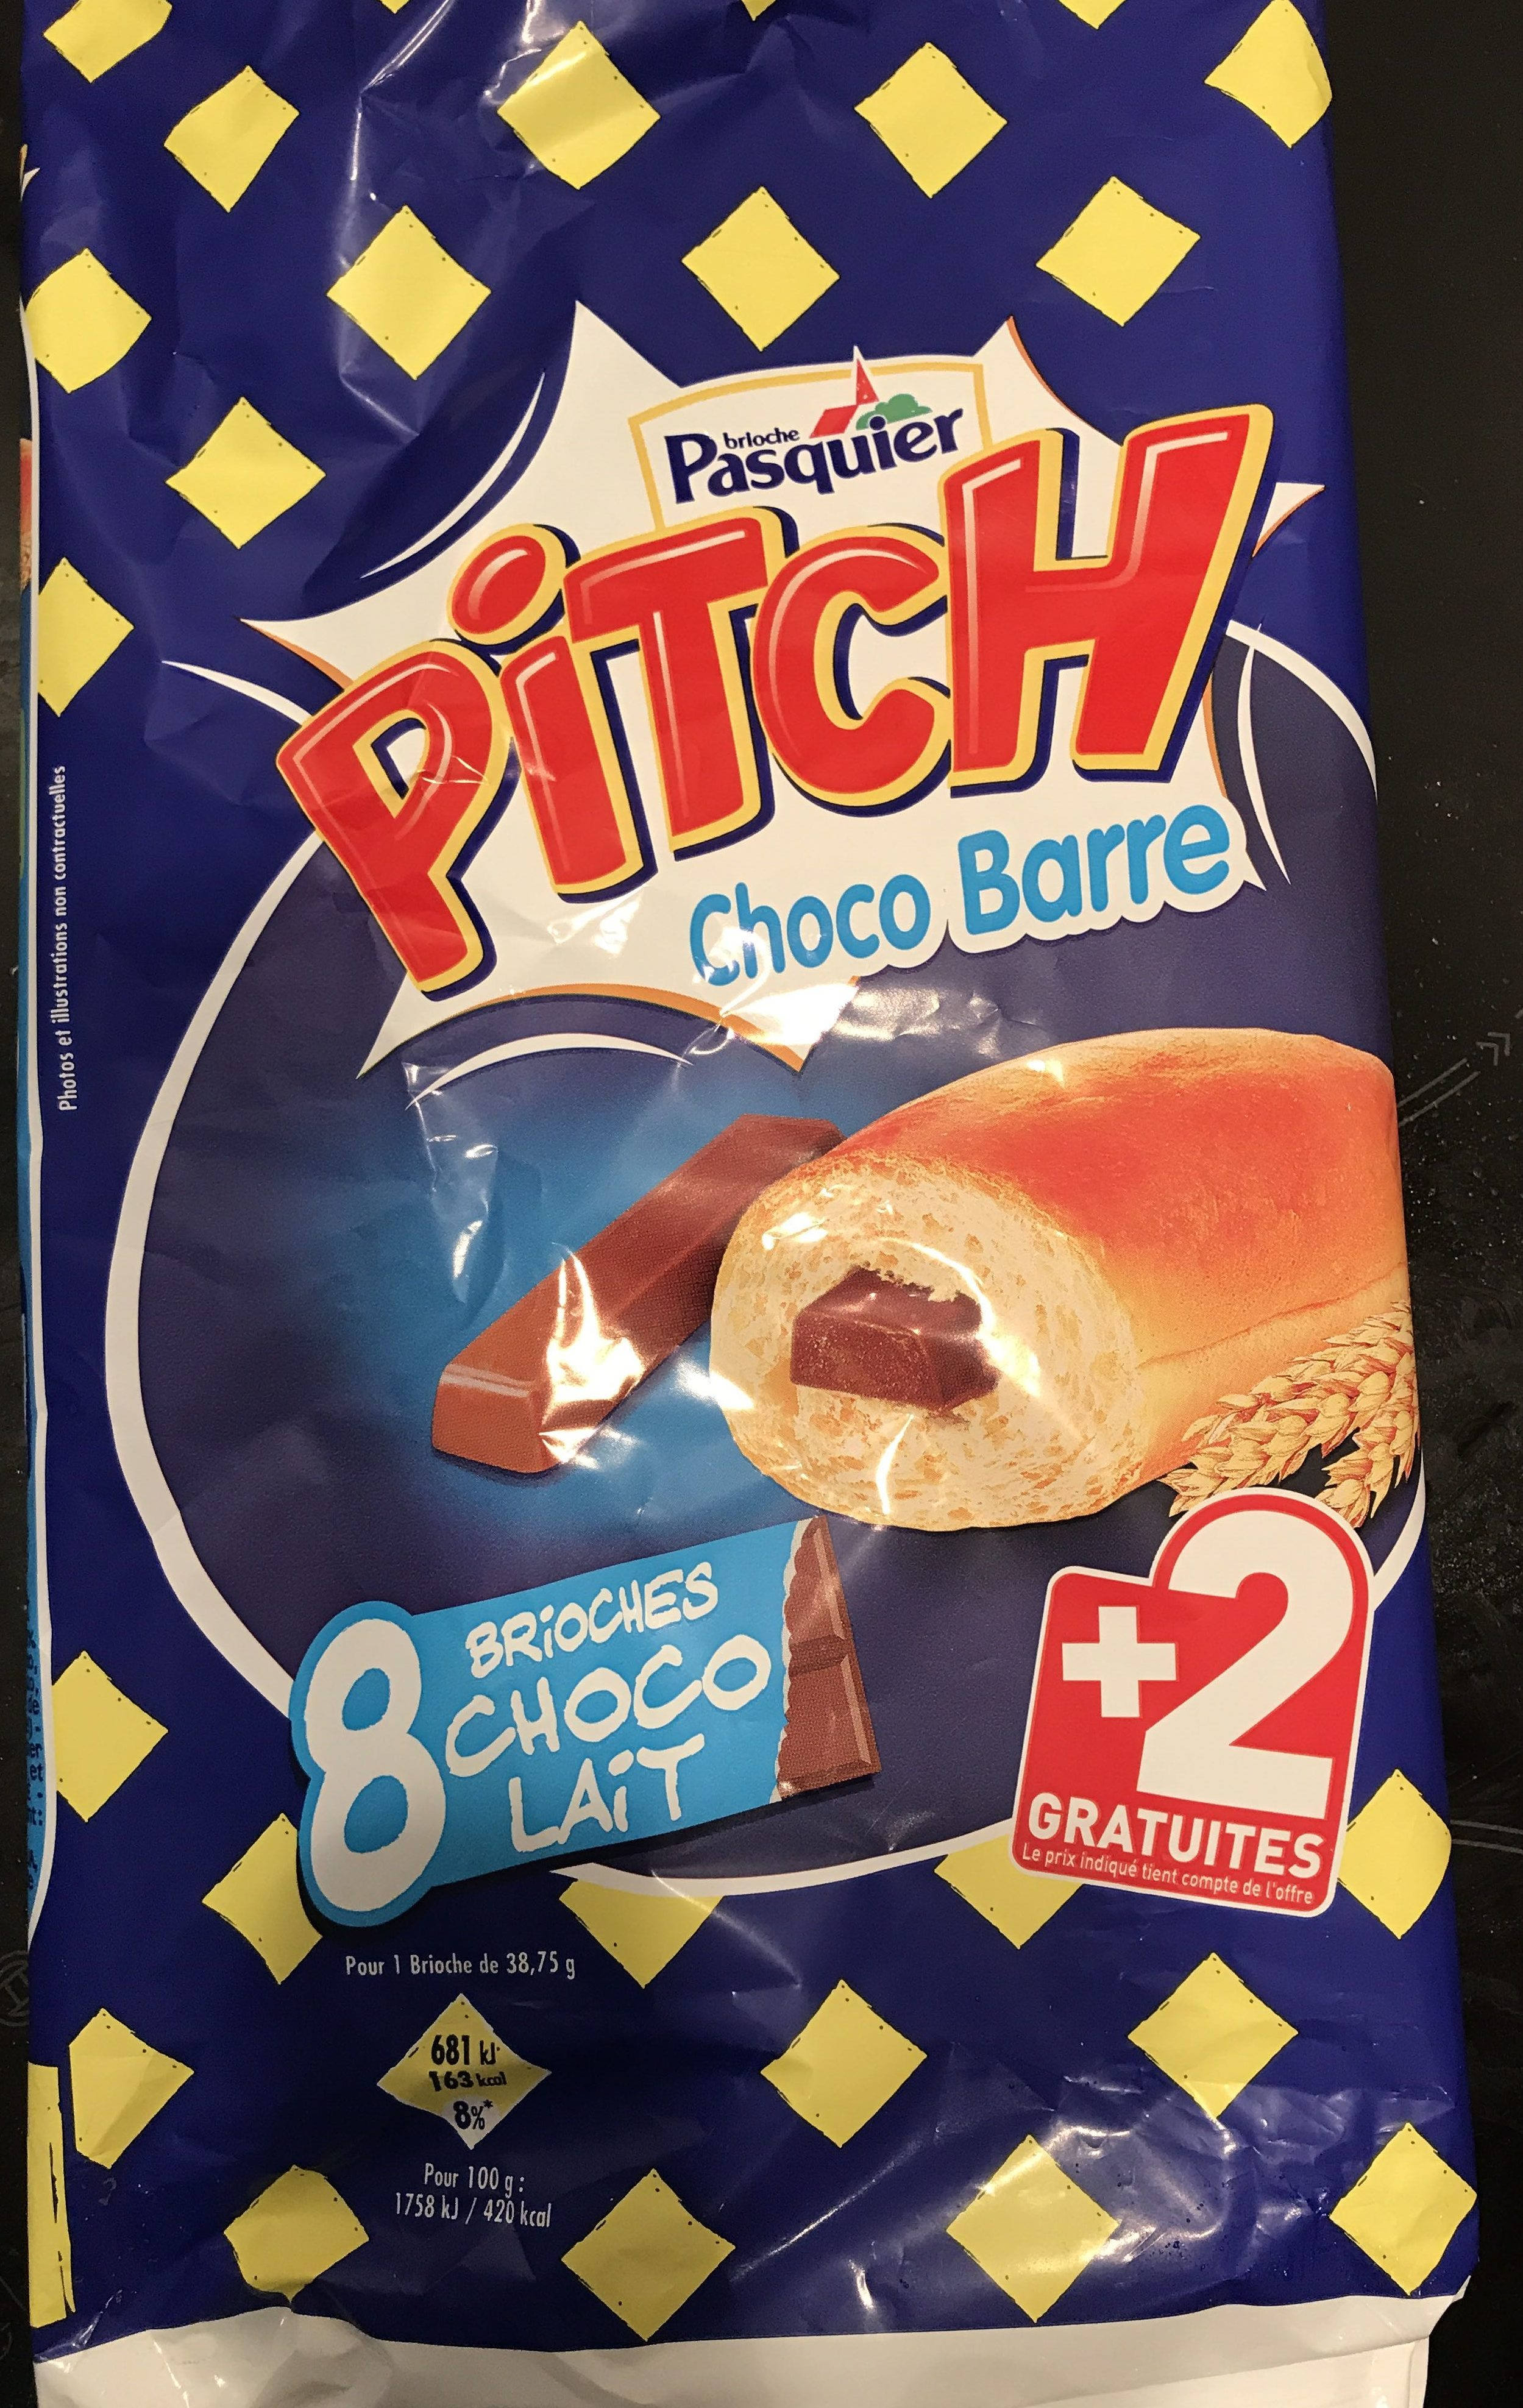 Pitch choco barre lait x 8 + 2 gratuits - Product - fr